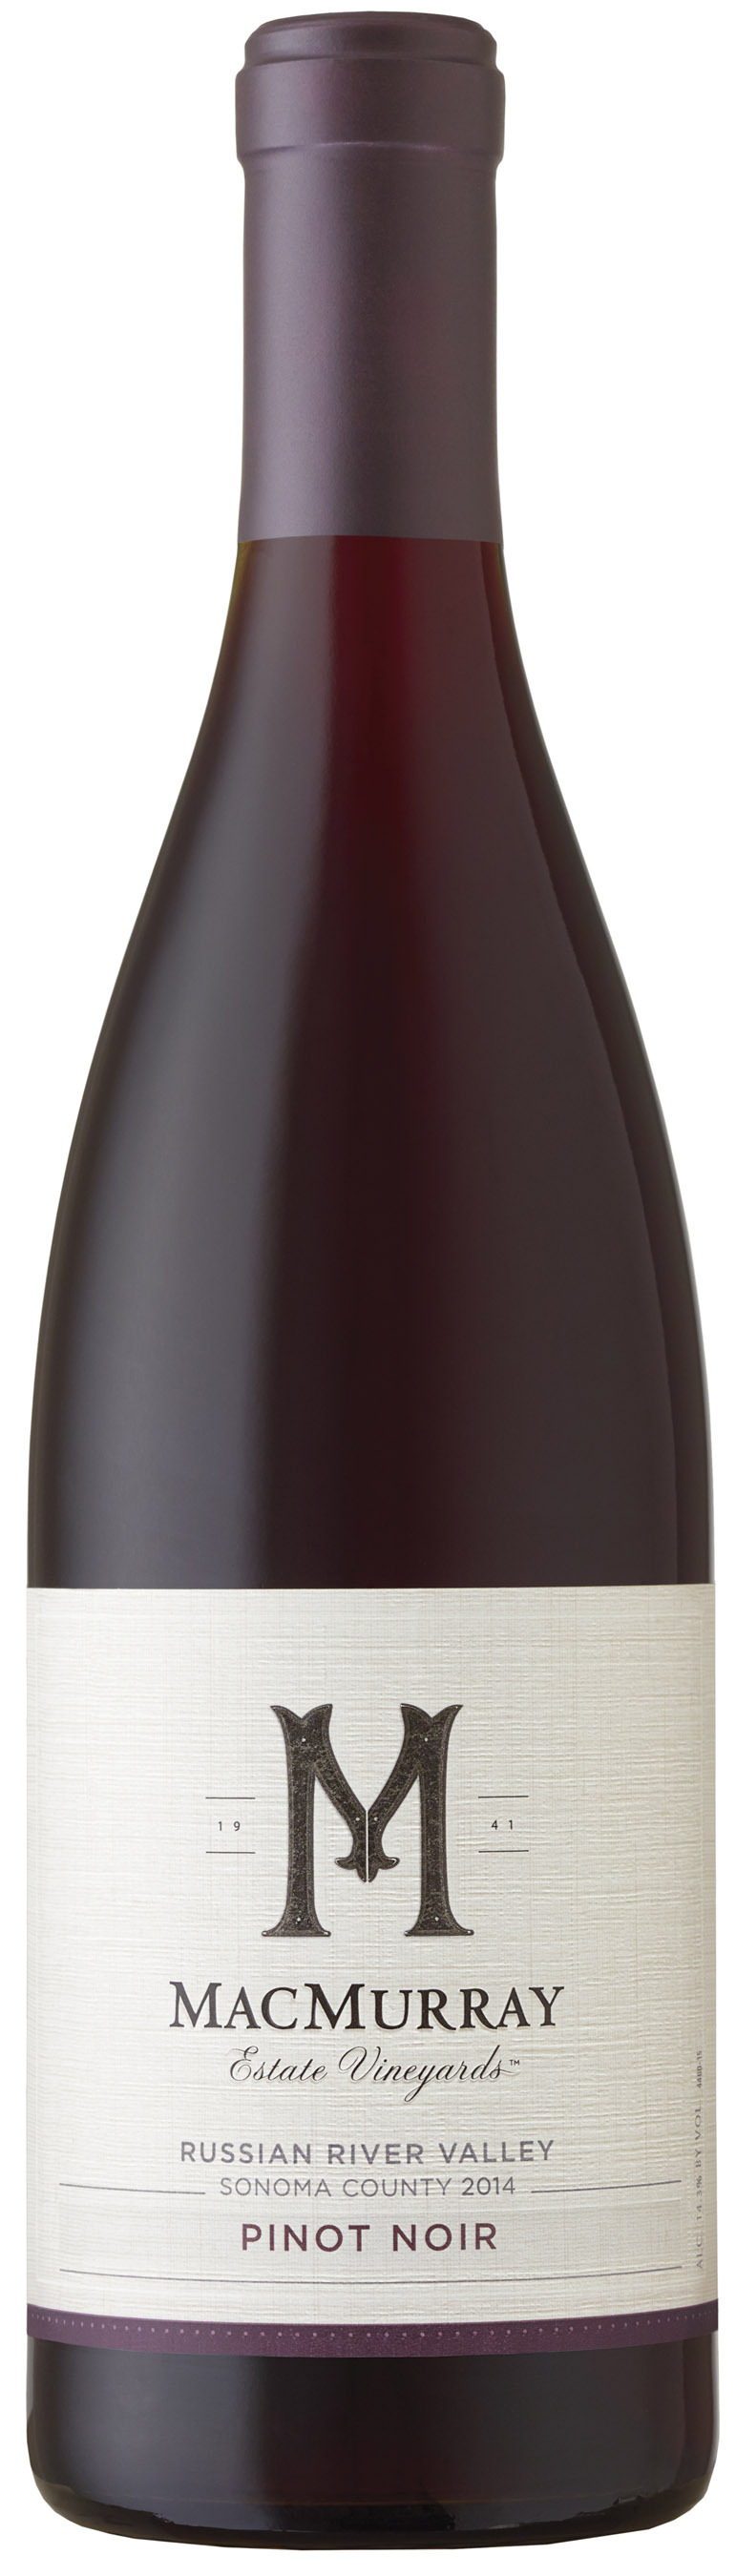 2015 MacMurray Pinot Noir Russian River Valley